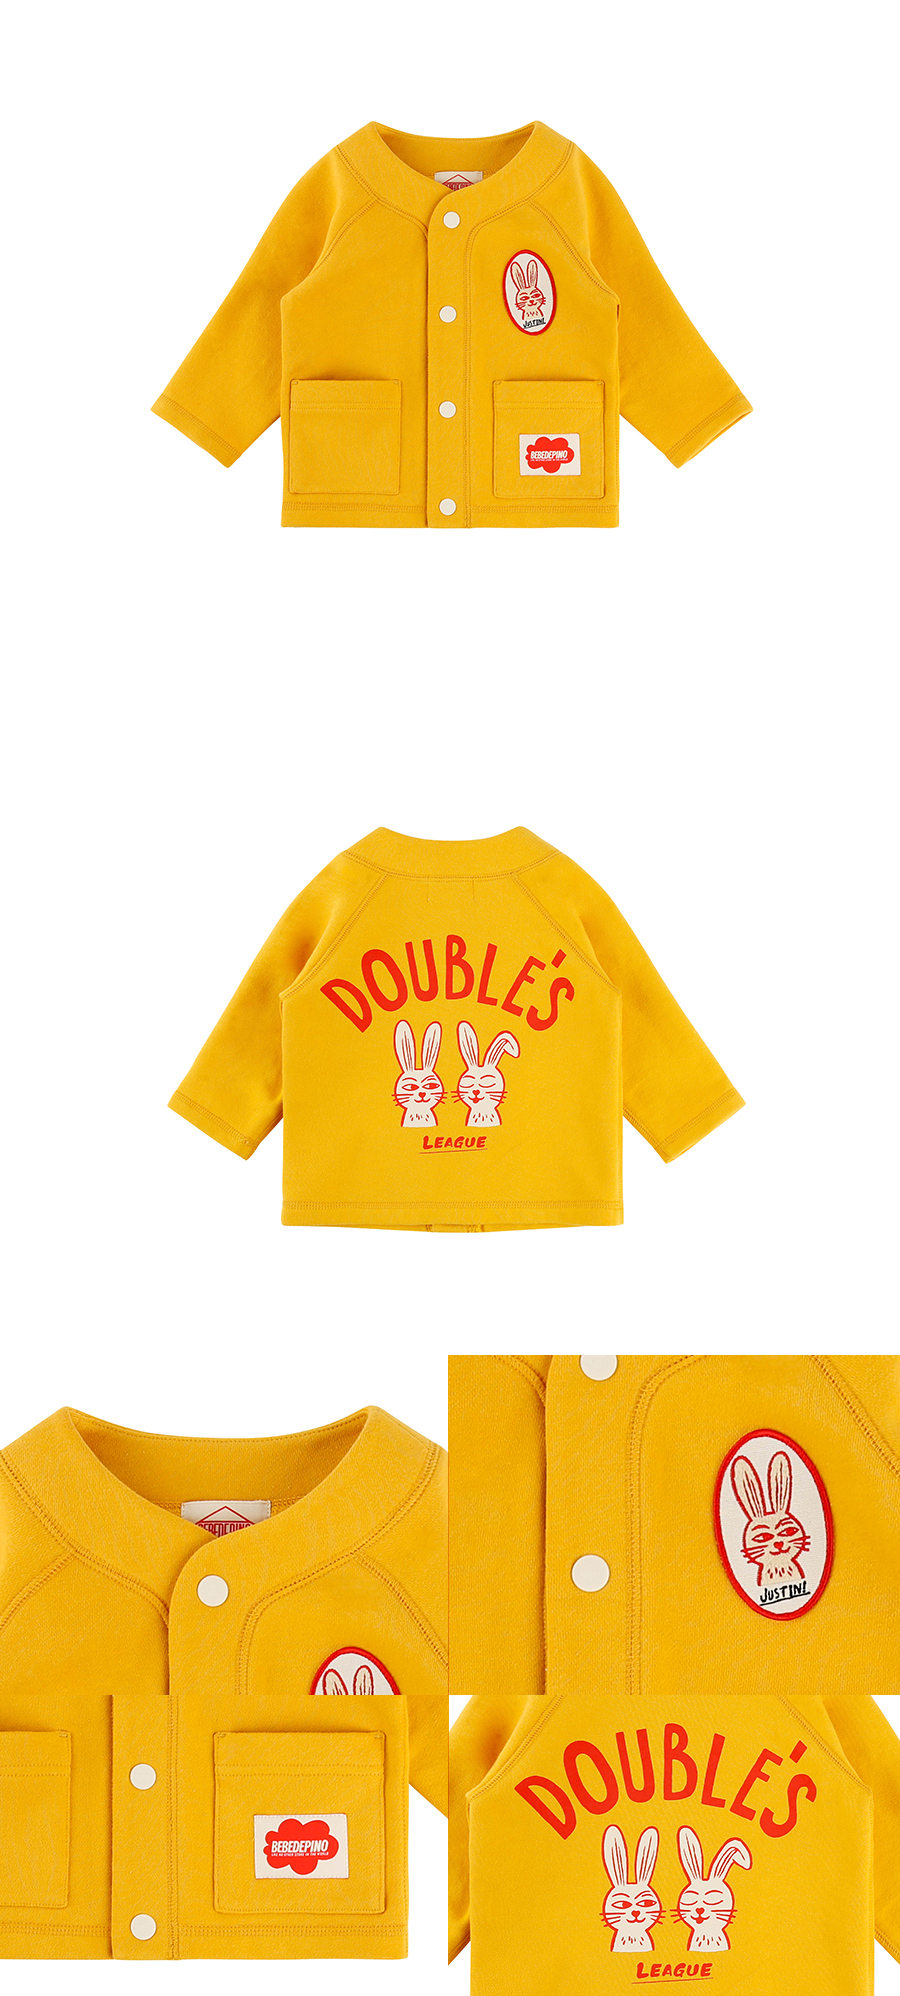 Doubles rabbit baby cardigan 상세 이미지